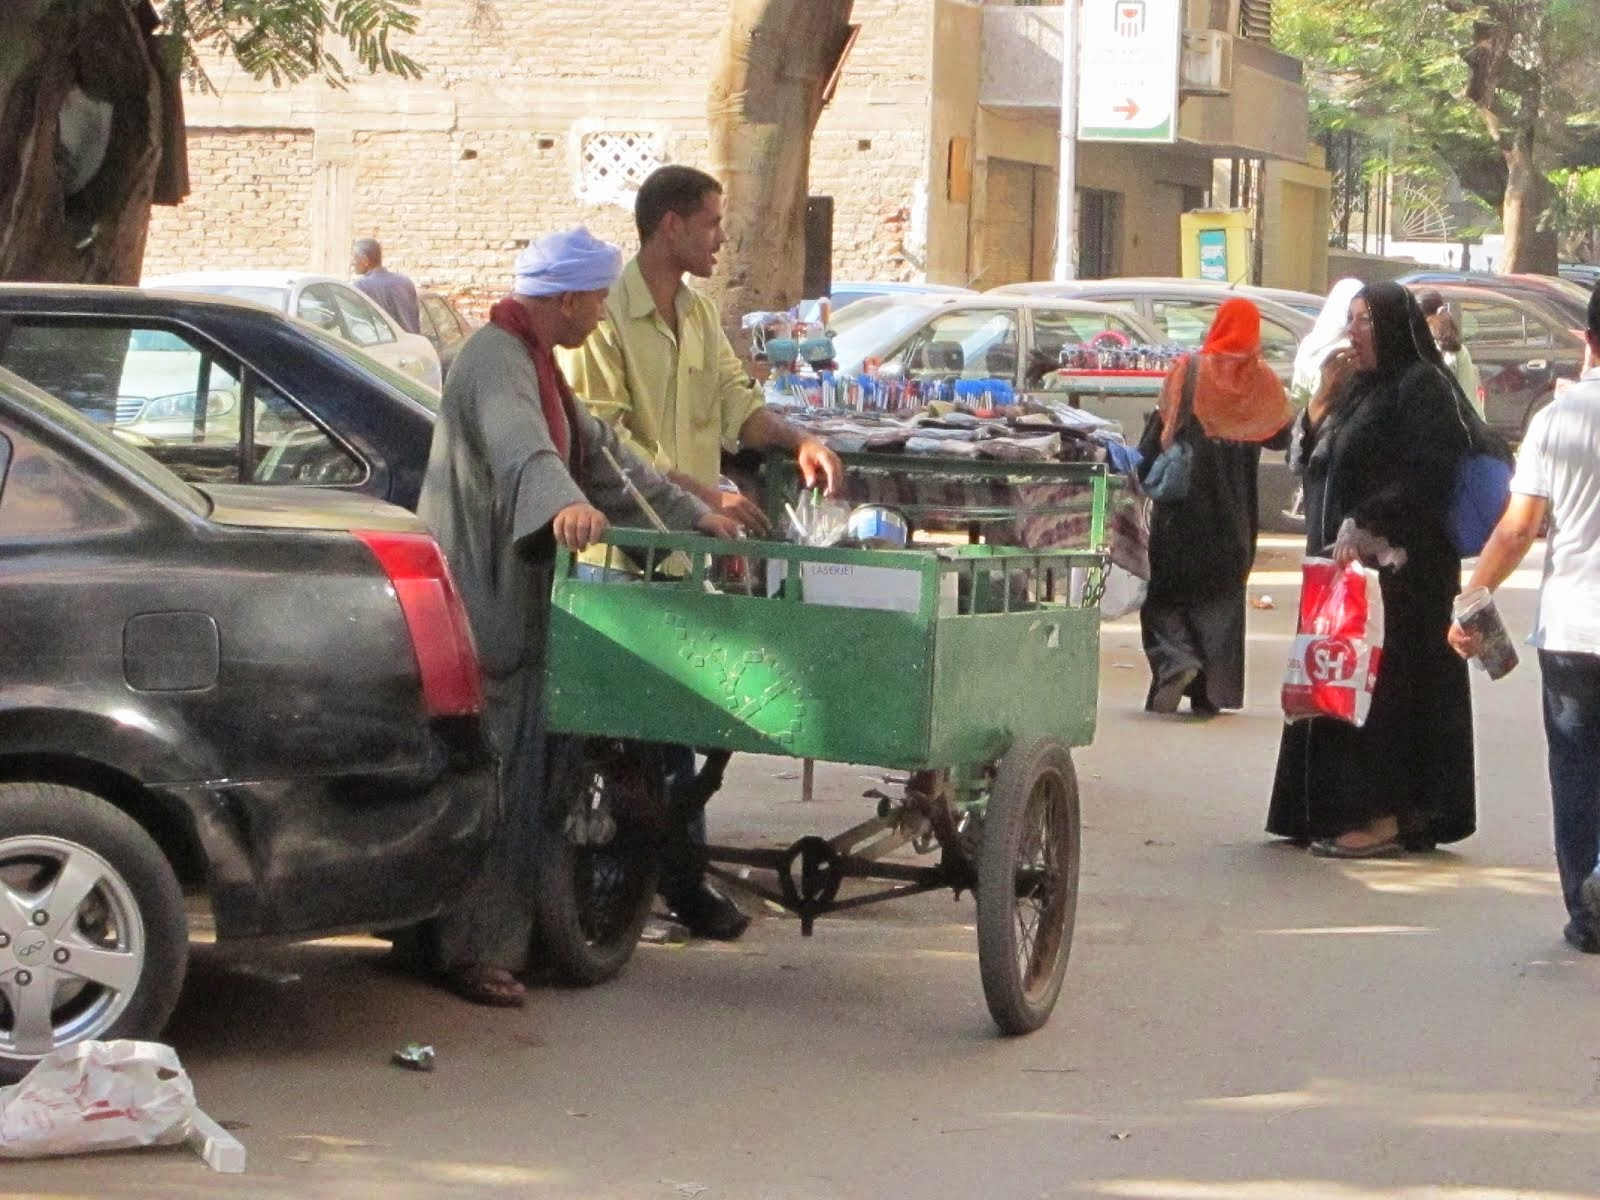 A Cool Sustainable Transport Vehicle in Cairo!